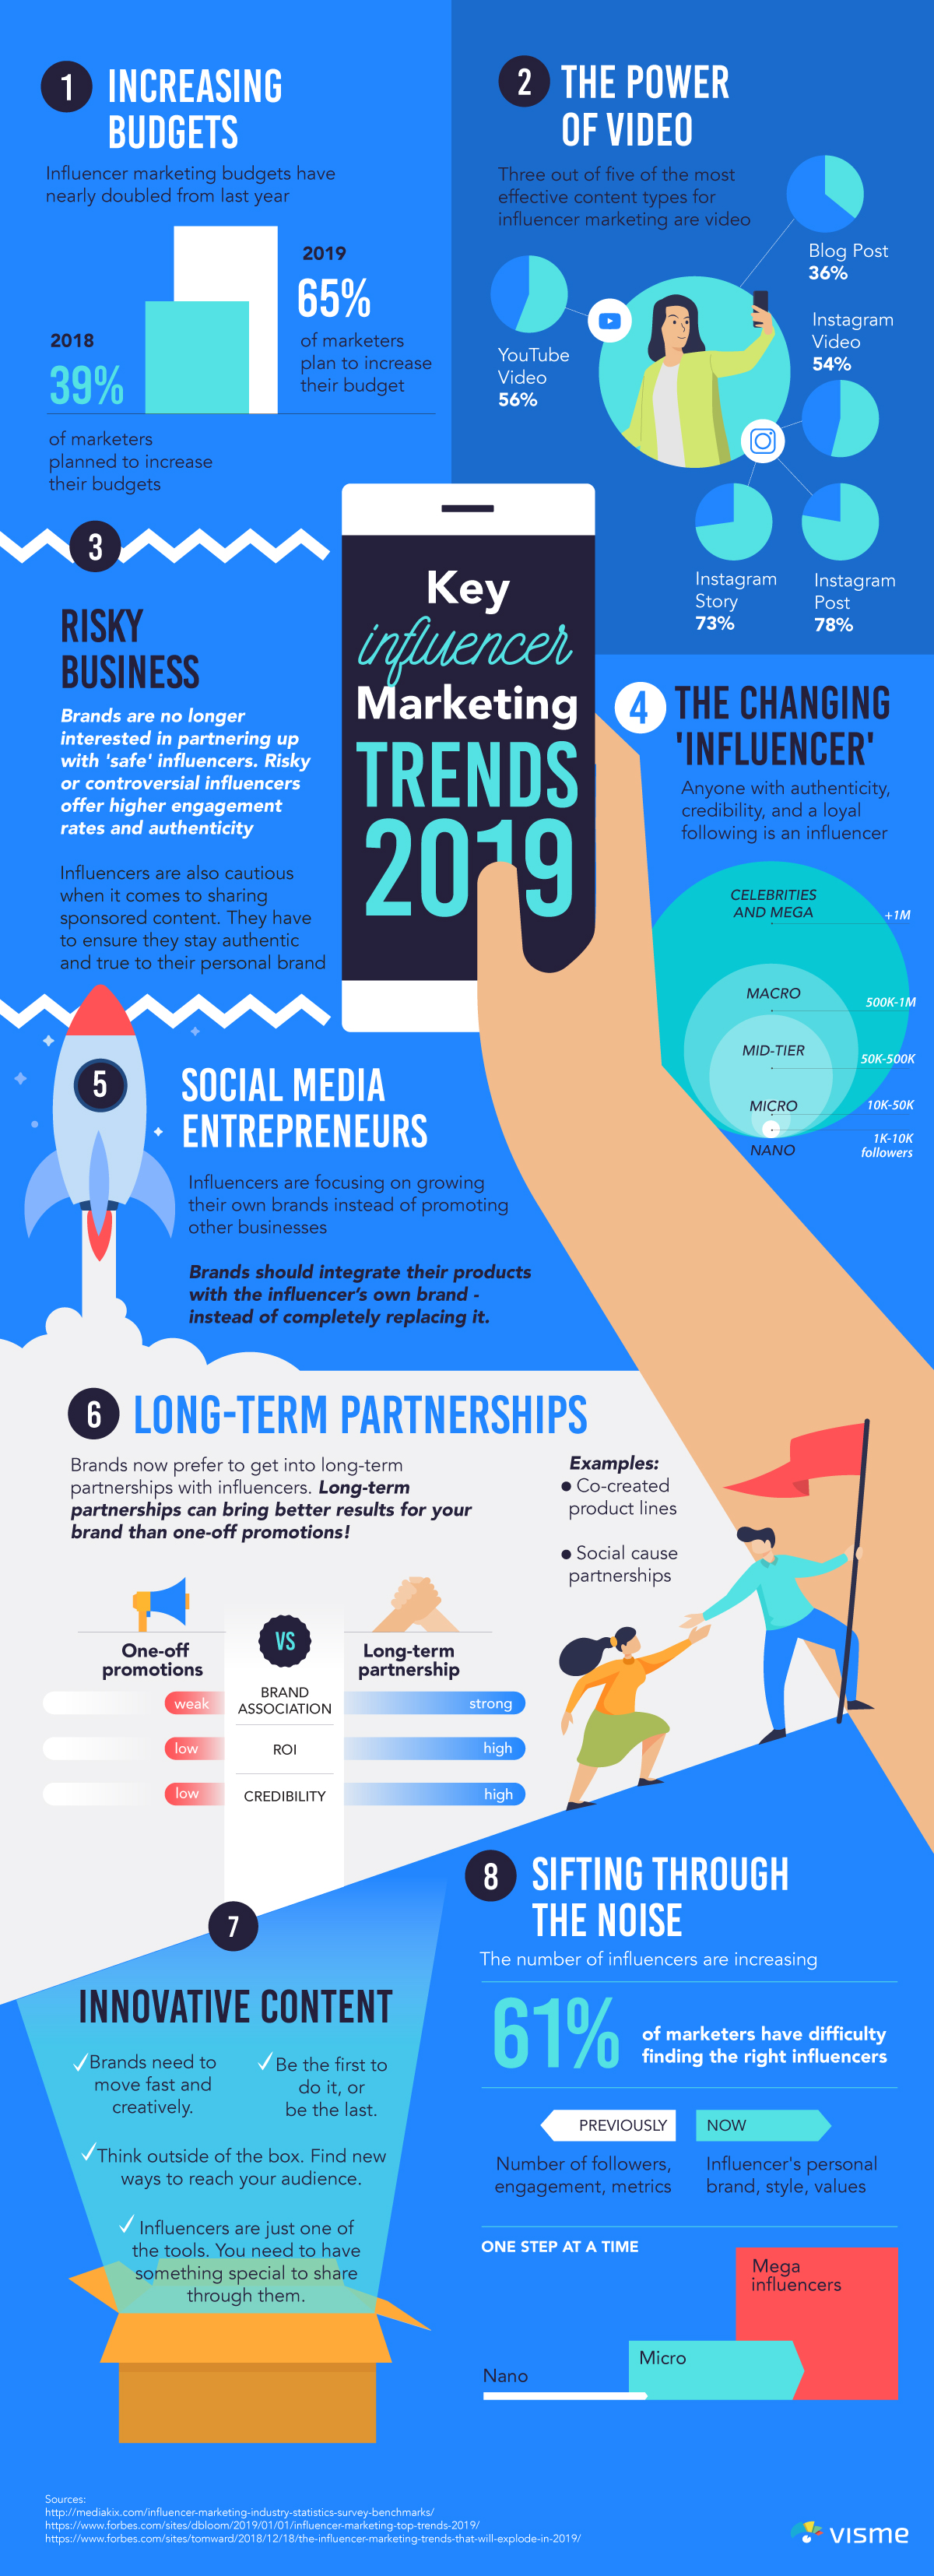 social media influencers influencer marketing trends 2019 infographic